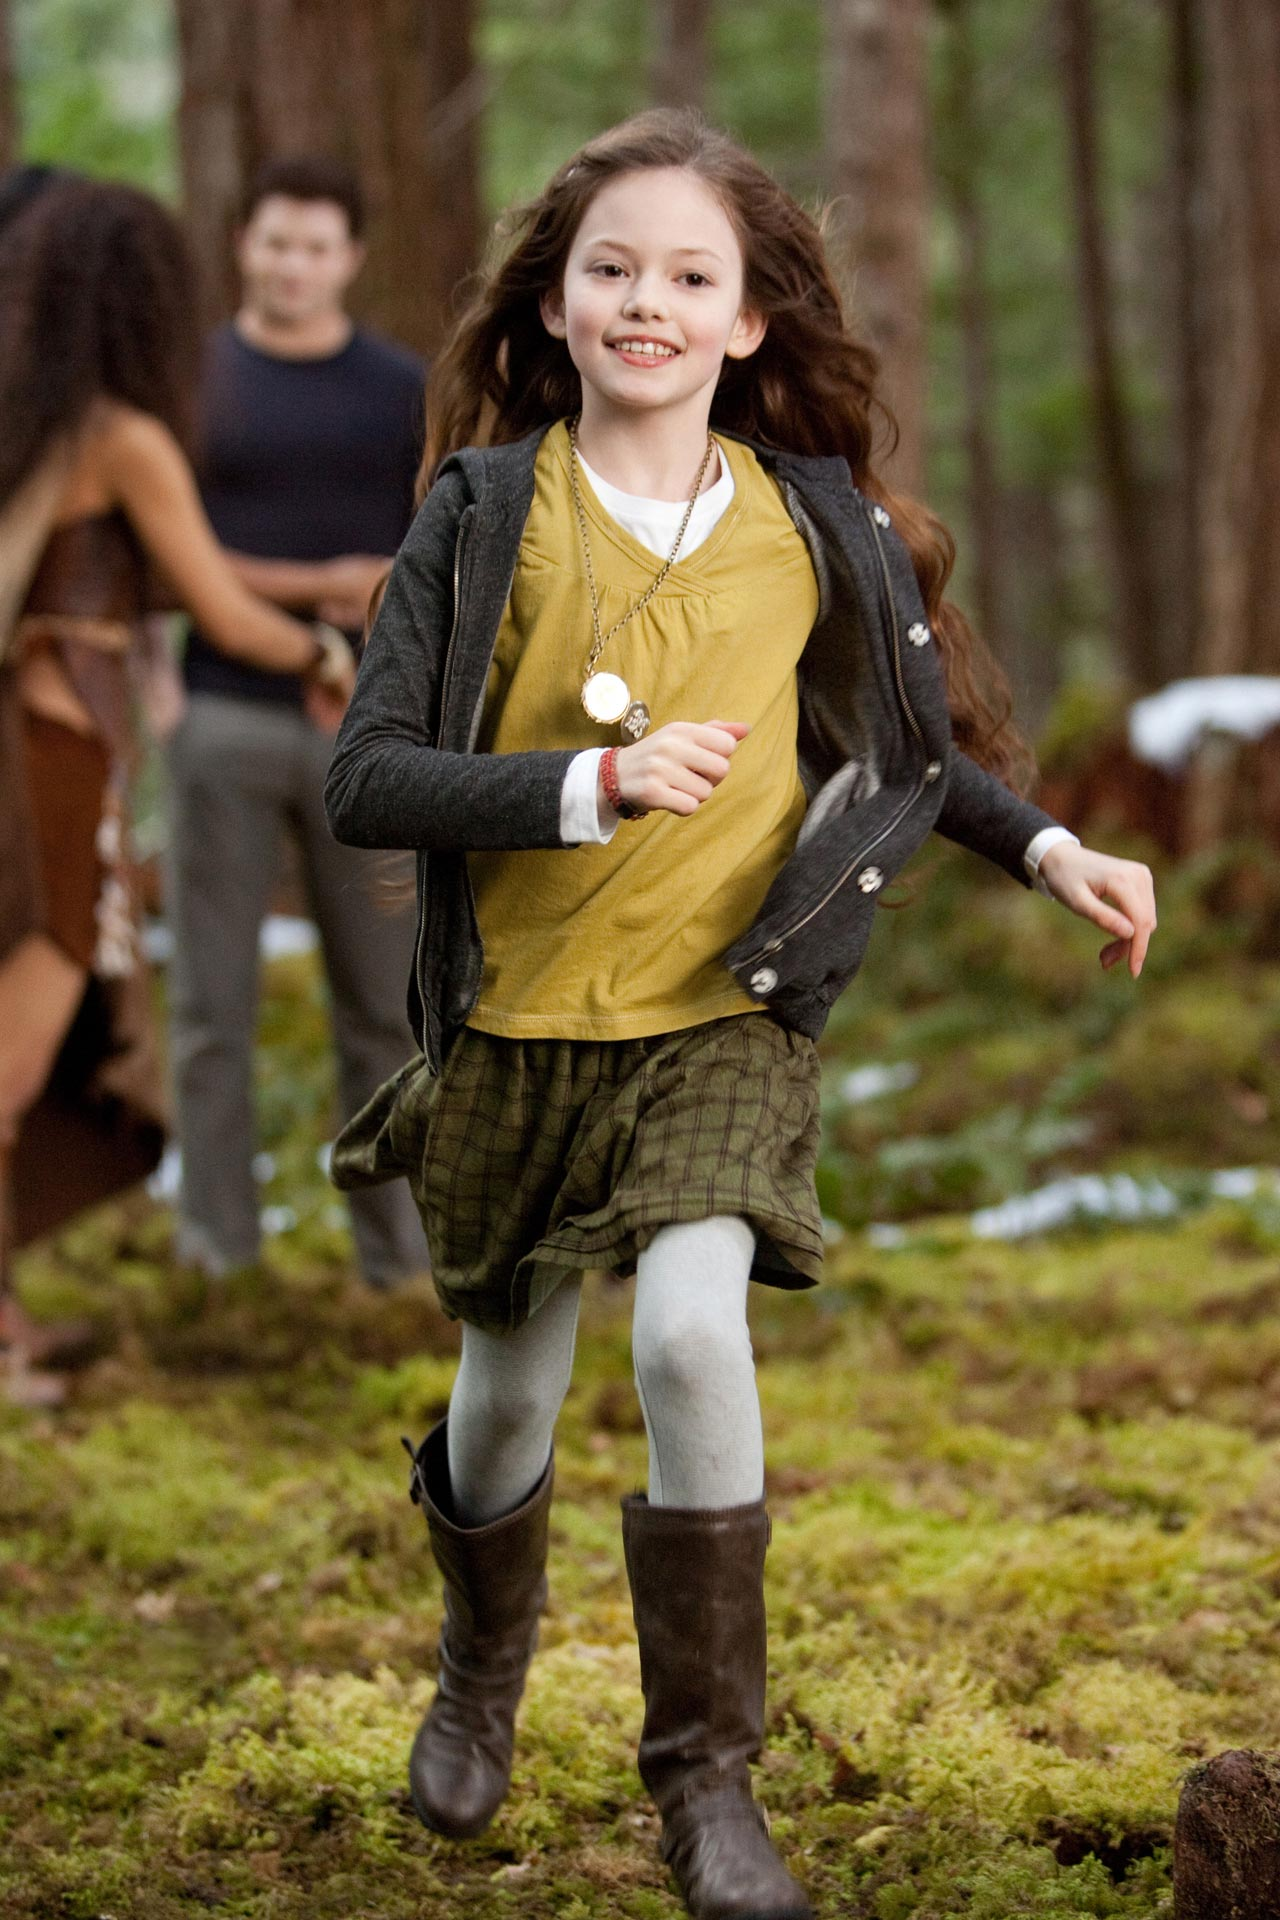 49 New THE TWILIGHT SAGA: BREAKING DAWN - PART 2 Photos ...